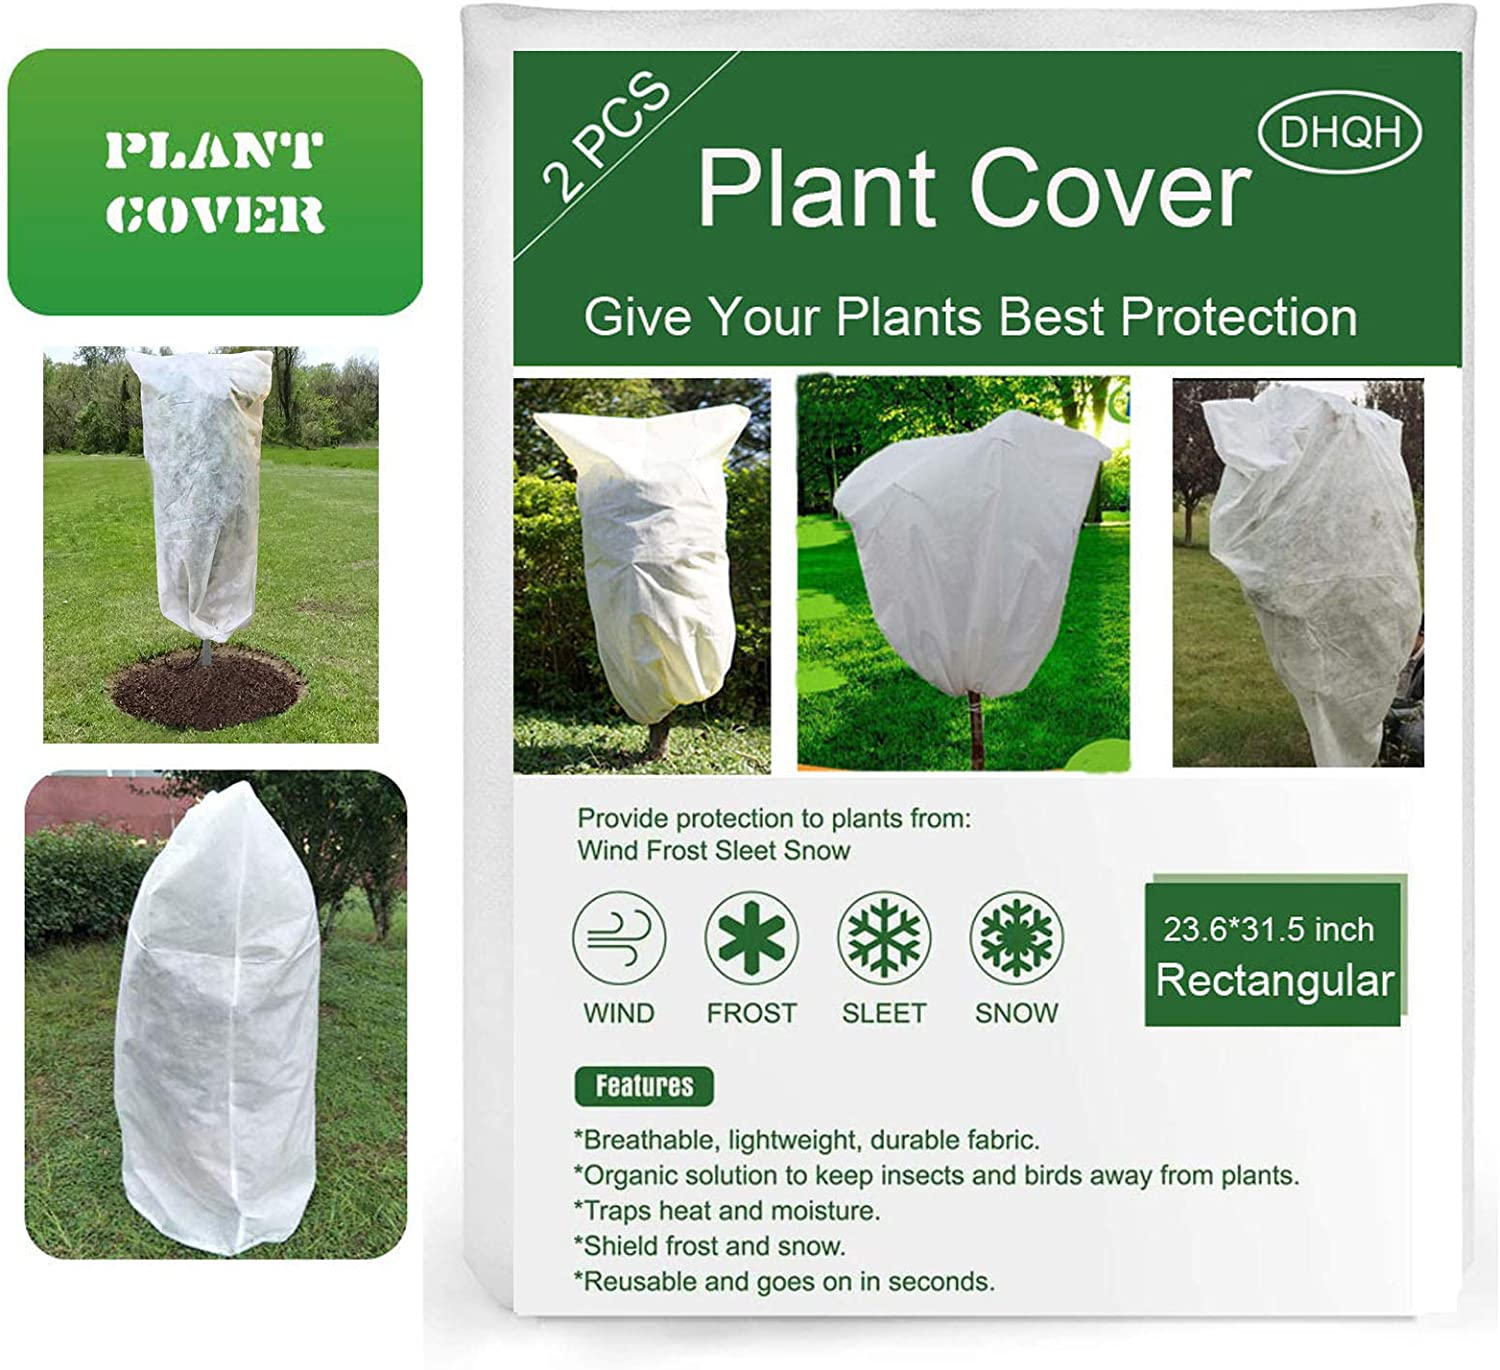 DHQH Plant Covers Freeze Protection,Upgraded Thickness Outdoor Plant Covers for Winter Frost Blanket,Anti-Freeze Jacket Warm Blanket for Shrub and Trees (19.6X27.5 inch,2Pack)…